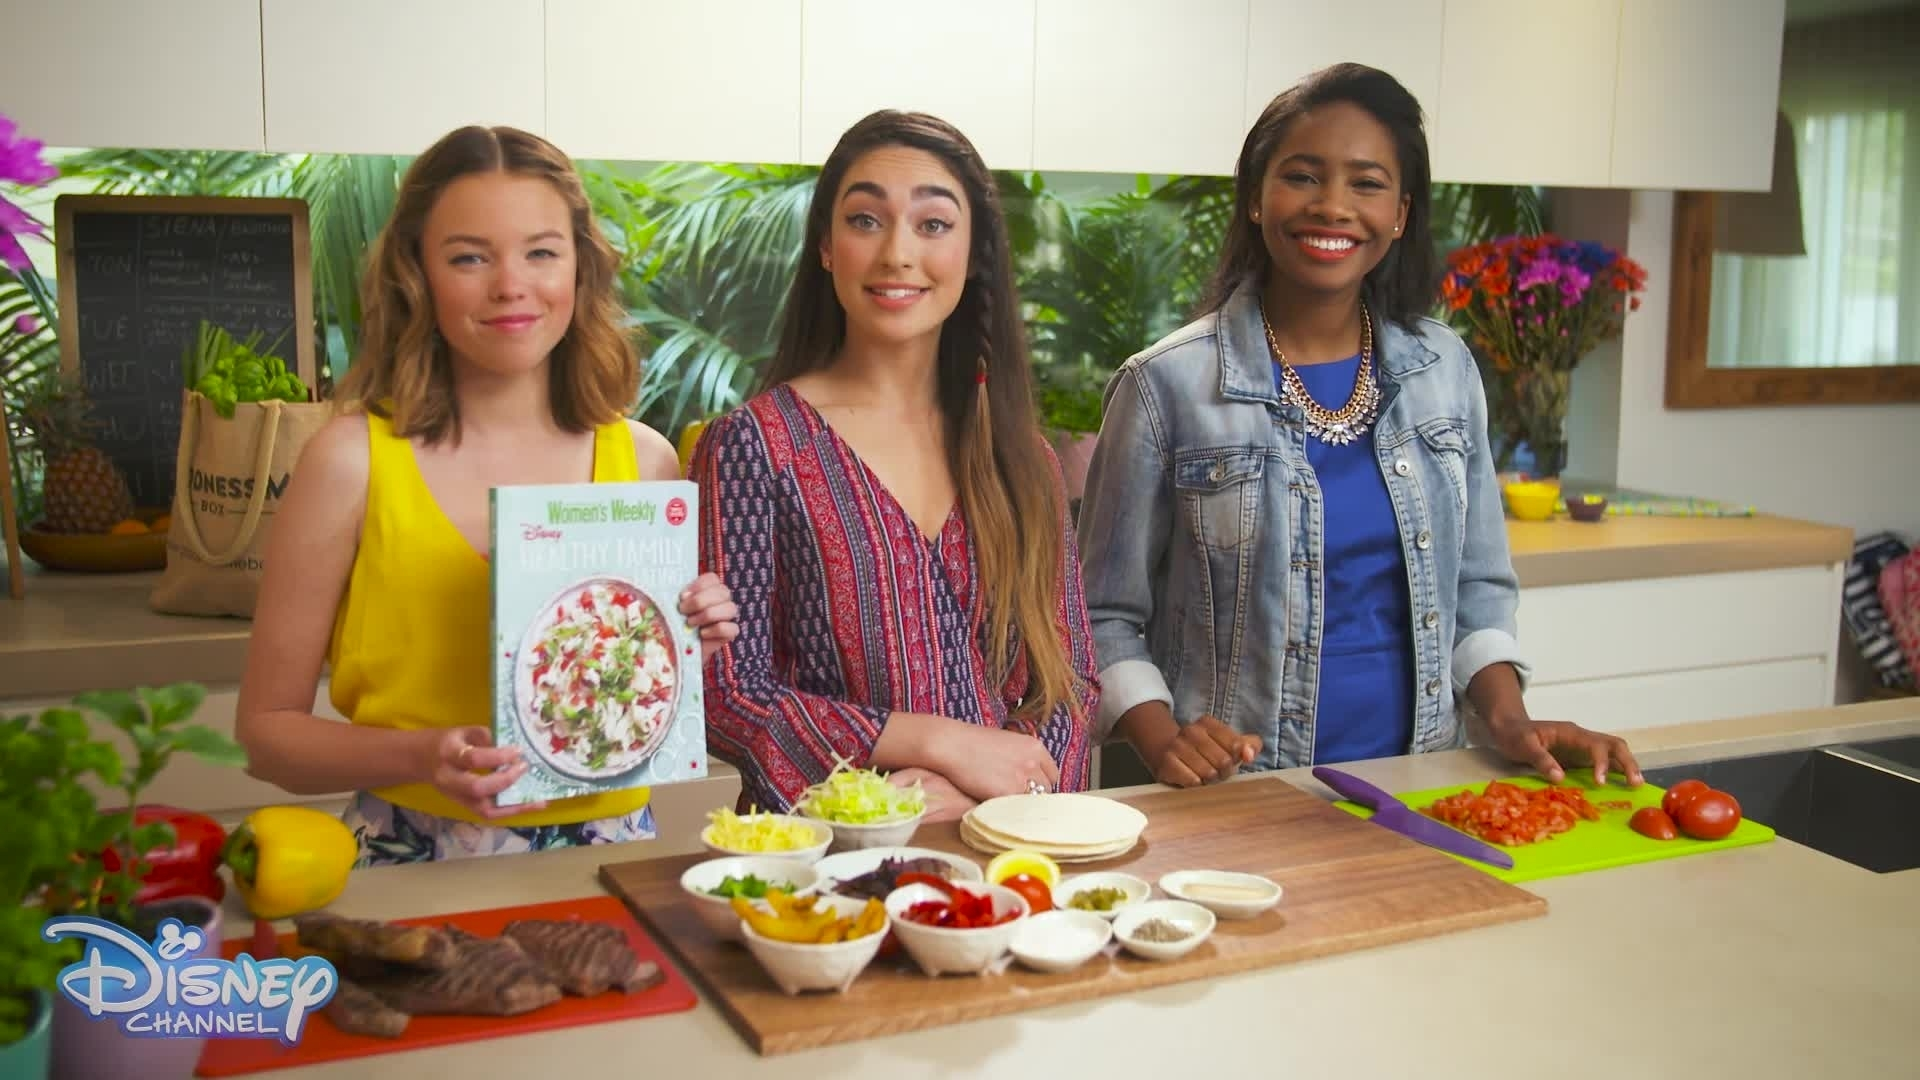 B.F. Chefs: Disney Healthy Eating Recipes